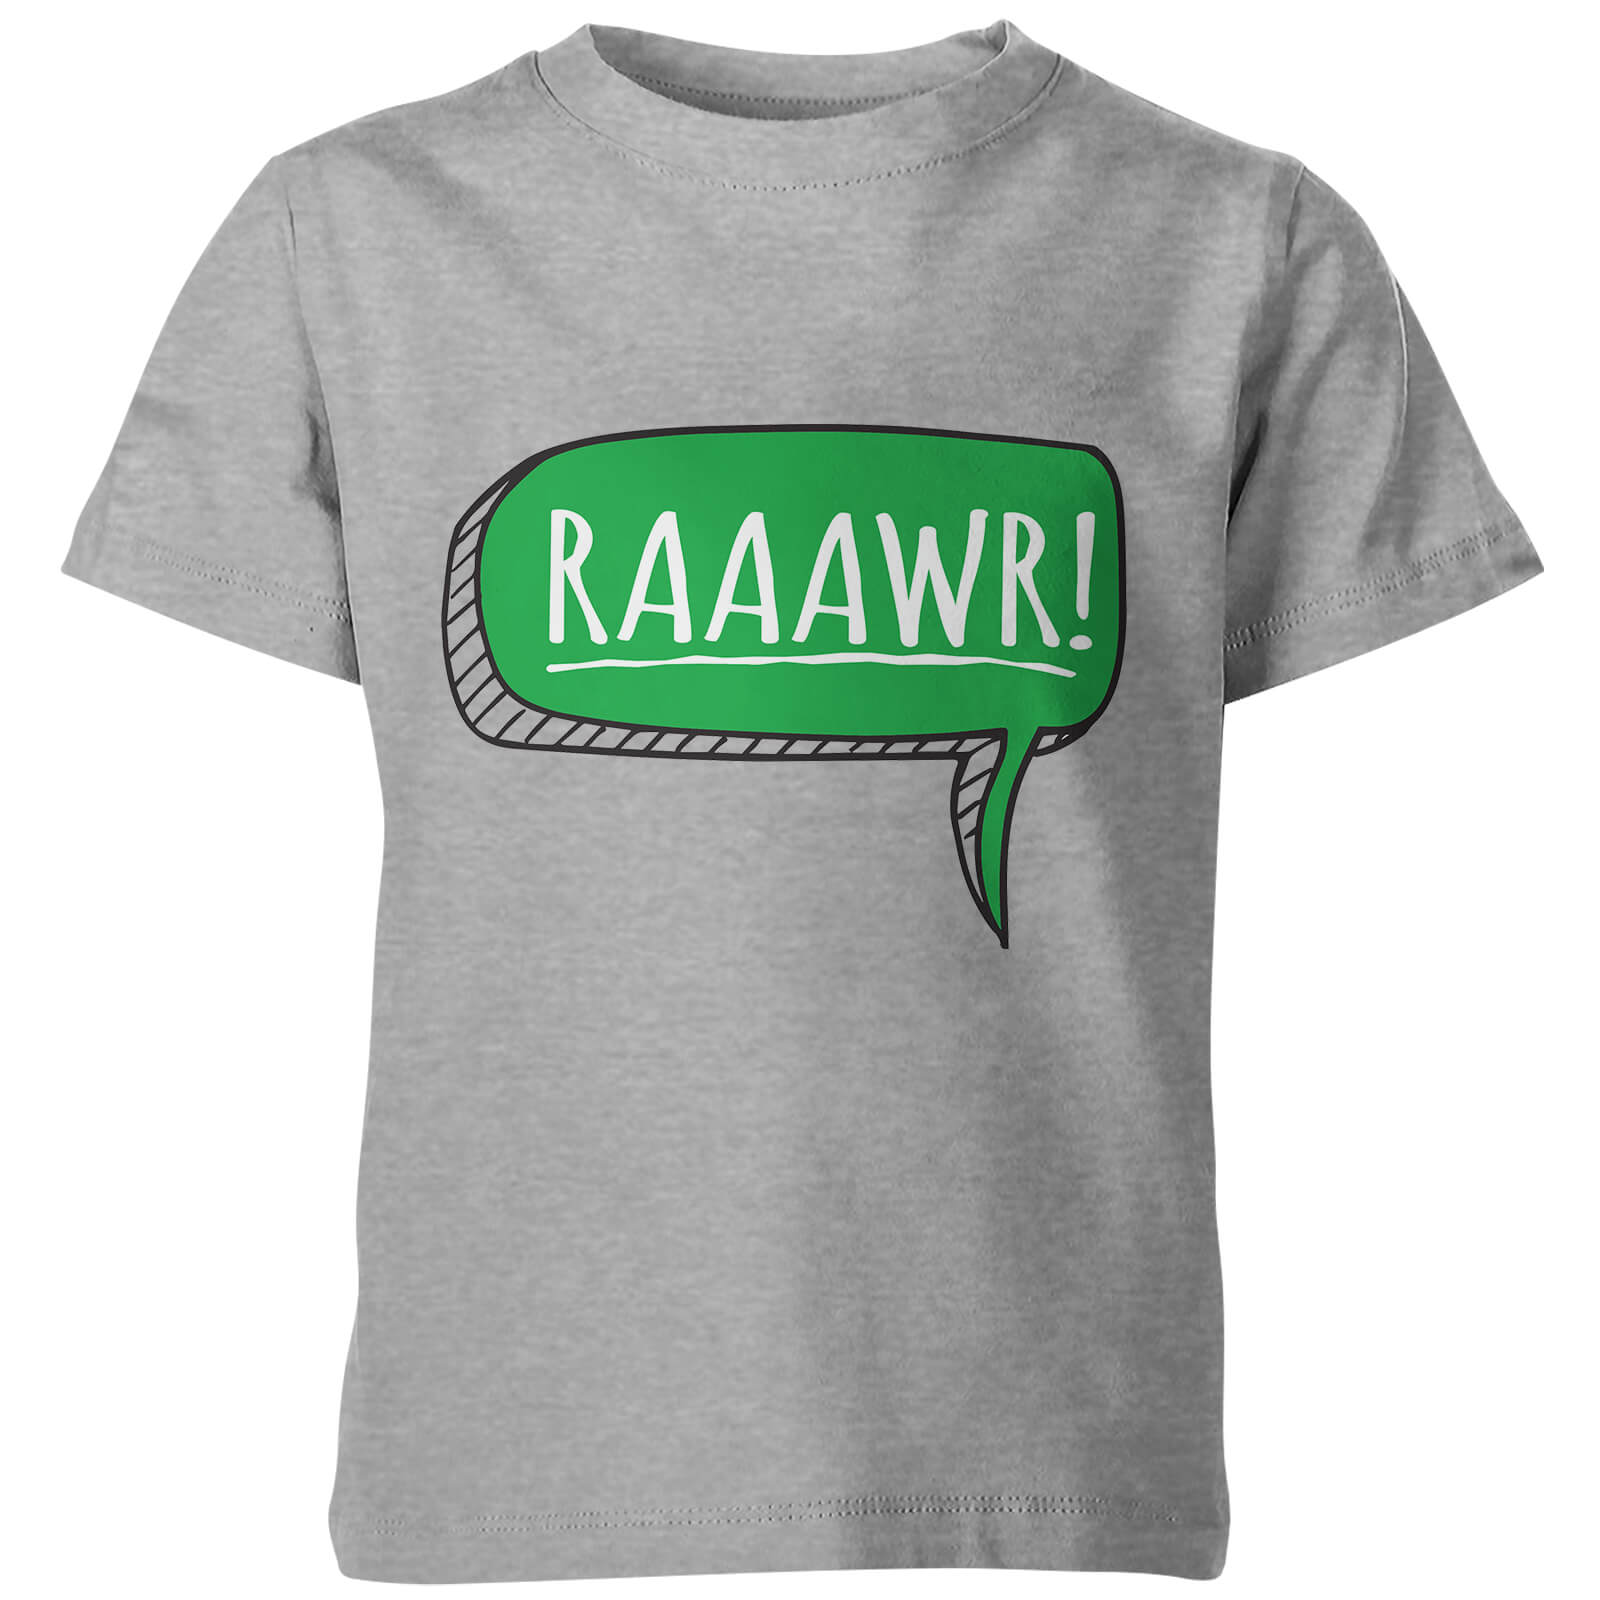 My Little Rascal Kids Dinosaur Rawr! Grey T-Shirt